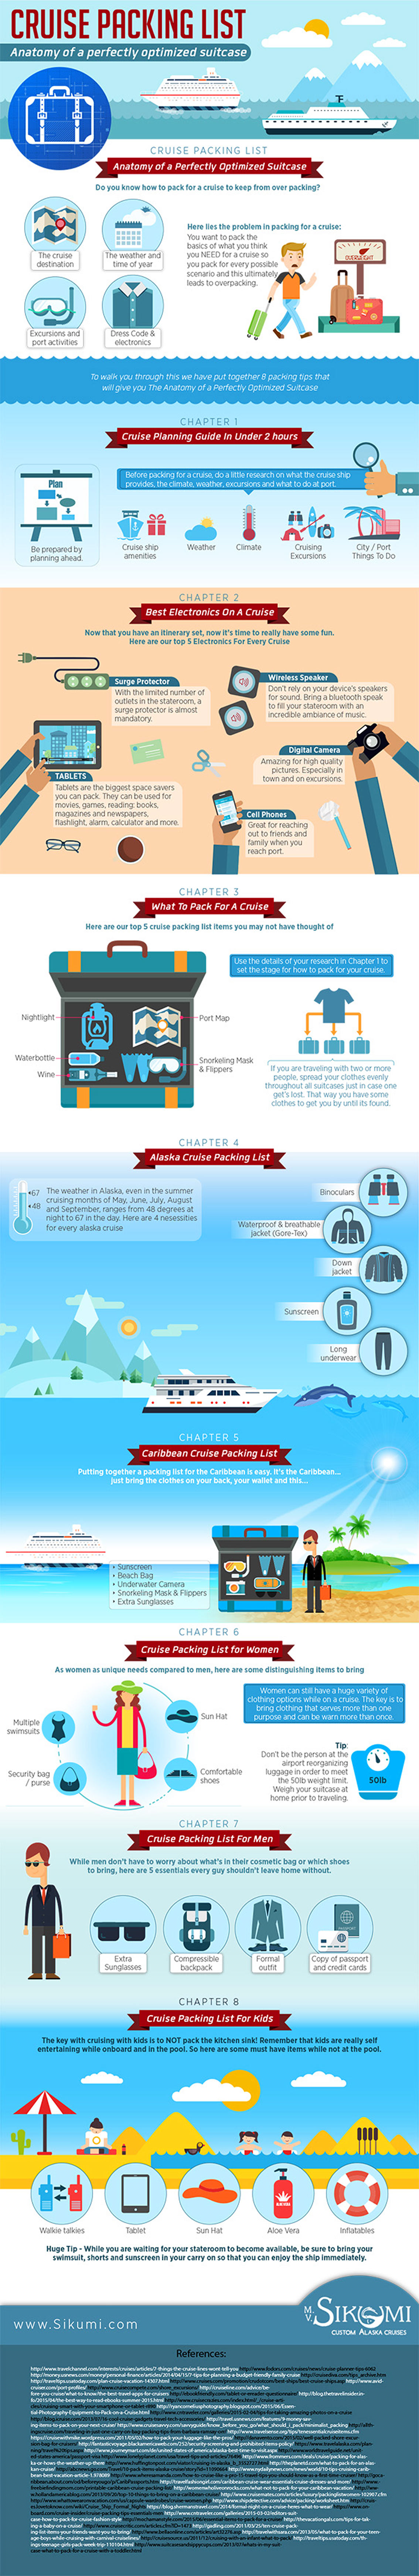 Cruise Packing List Infographic